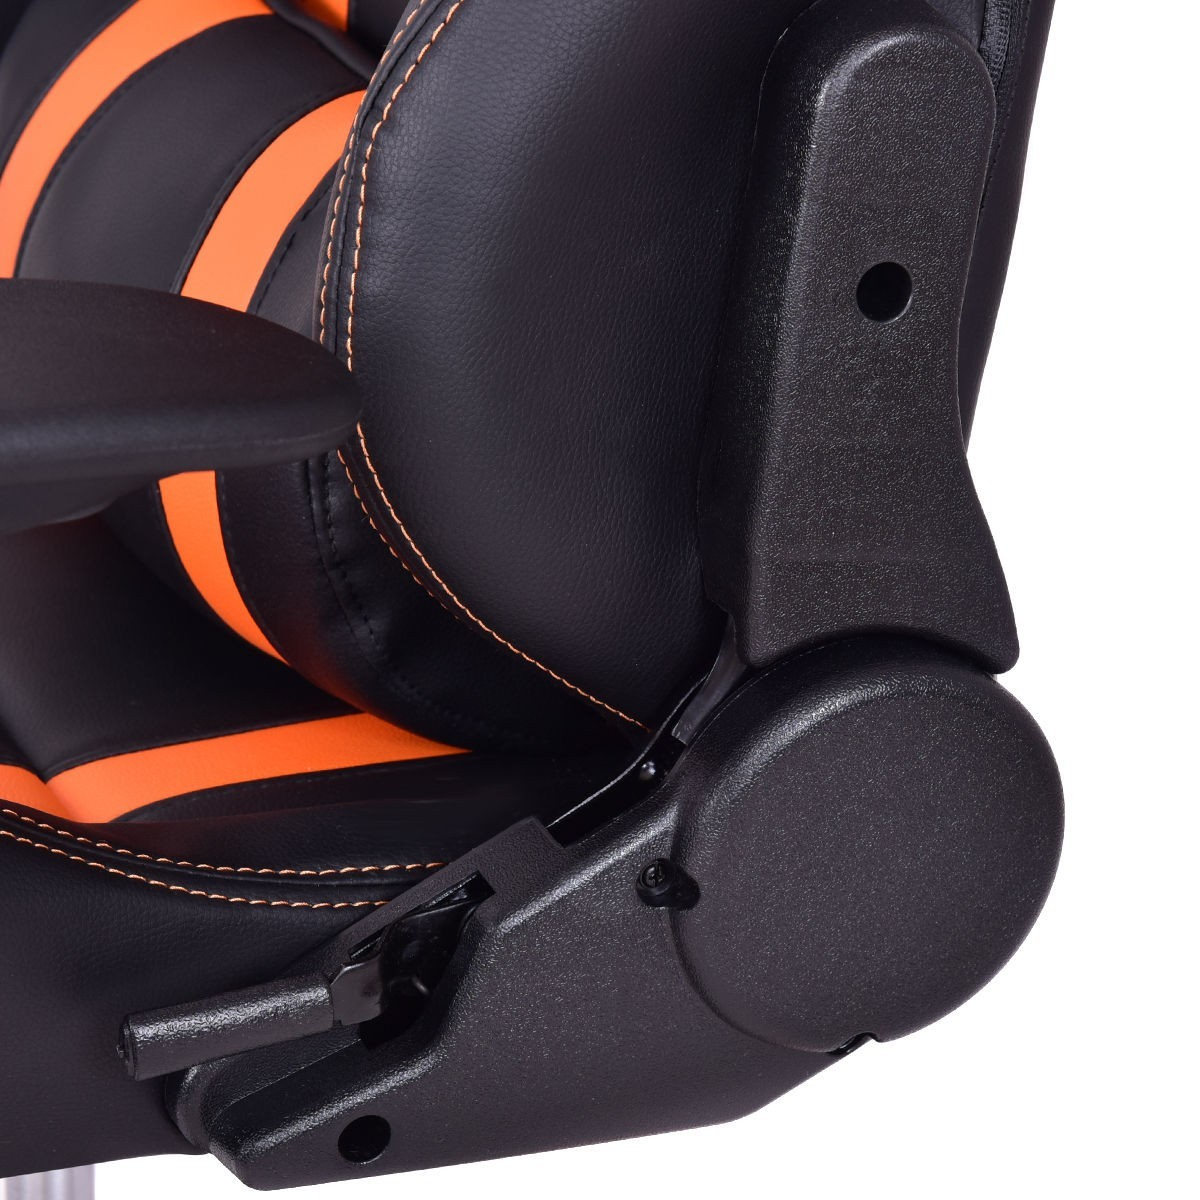 High-Back Reclining Racing Gaming Chair with Head-Rest Pillow - Red